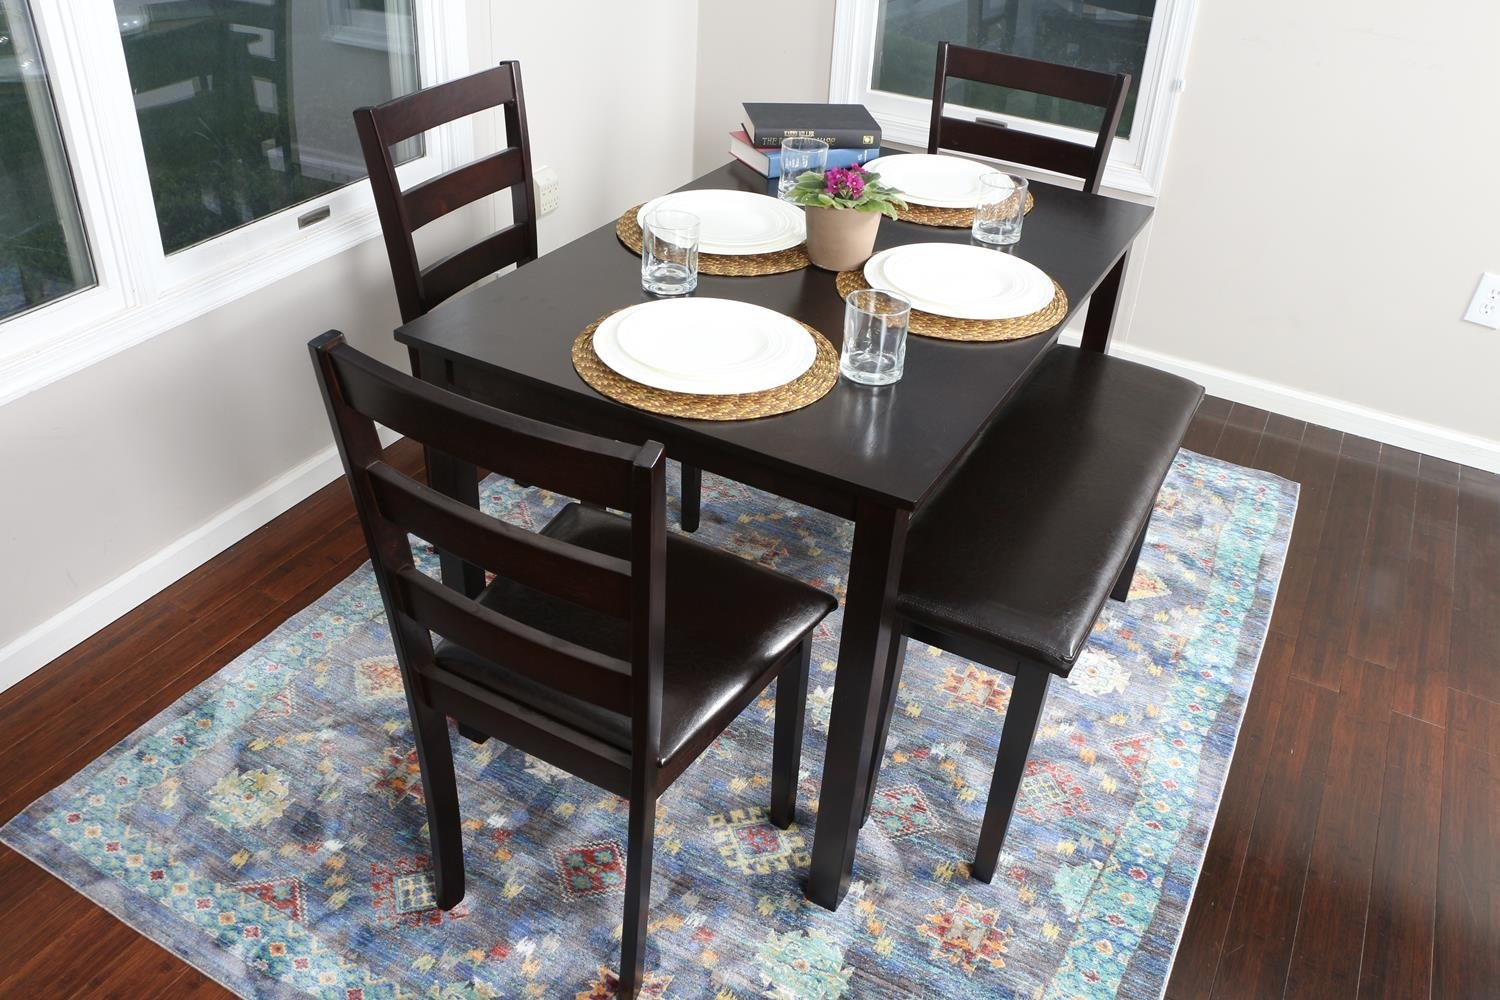 5 Piece Kitchen Dining Table Set 1 Table 3 Leather Chairs 1 Bench Espresso Brown Discount